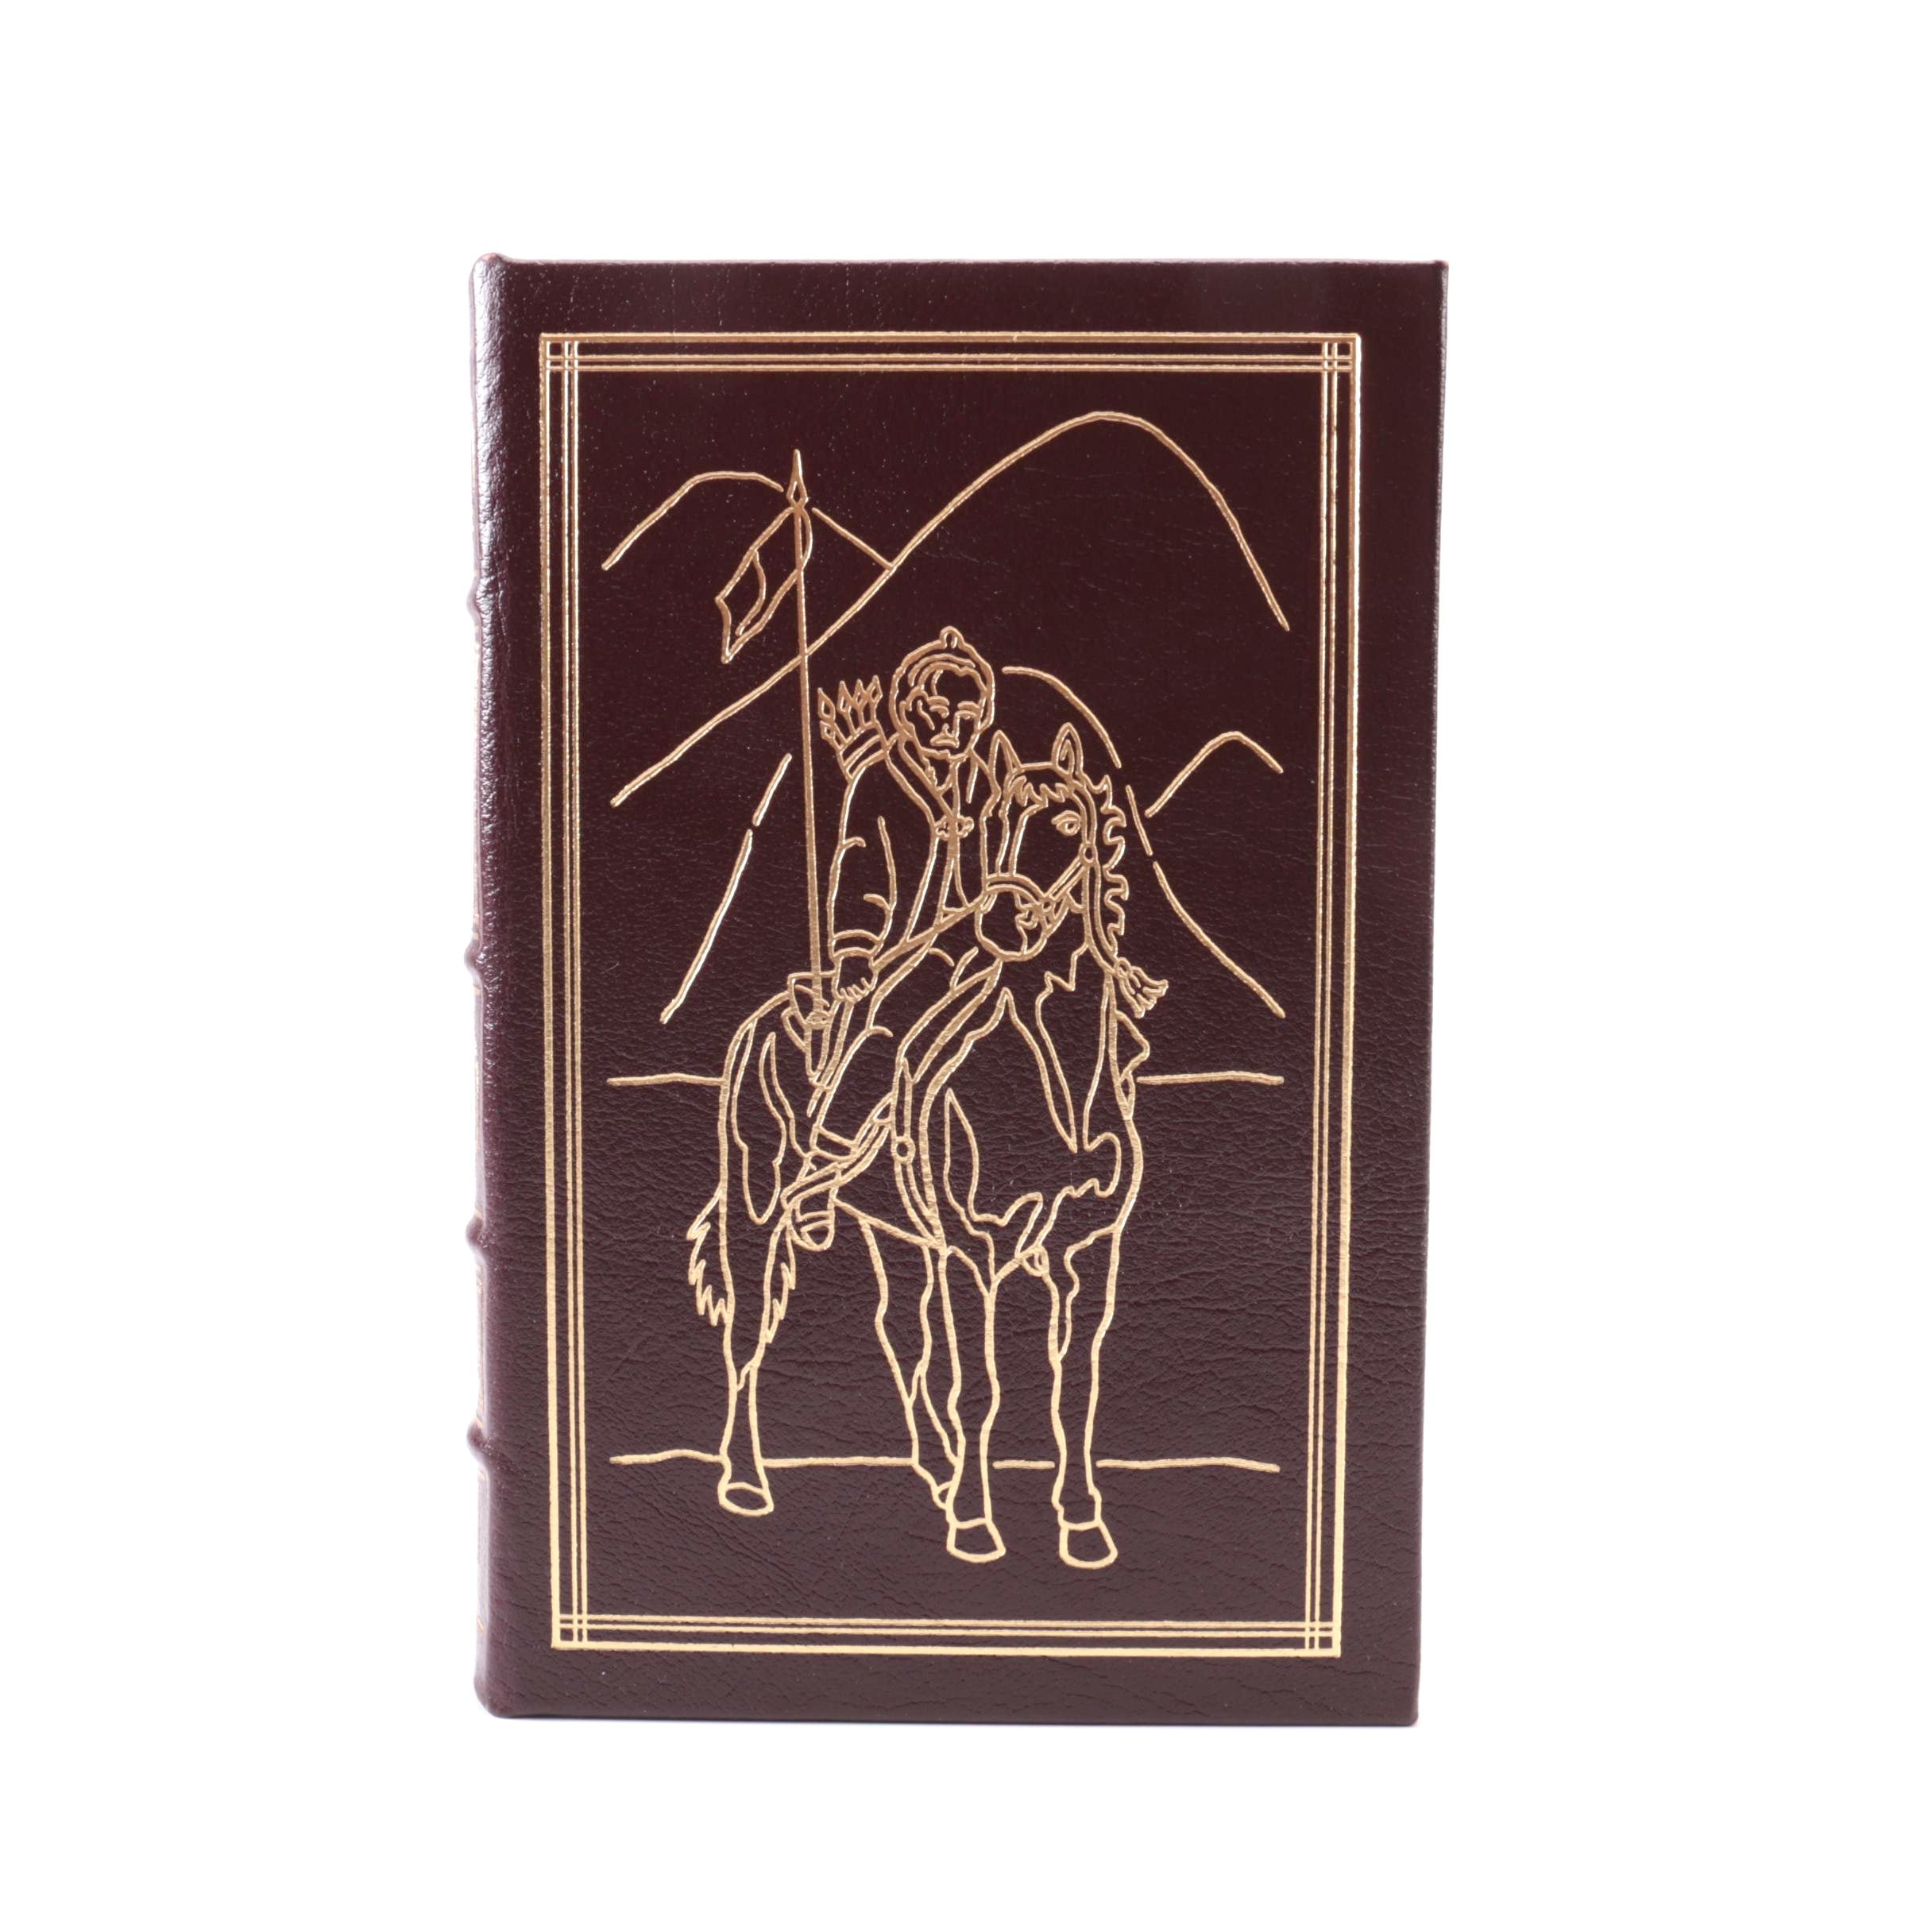 "2002 Signed Easton Press First Edition of ""The Years of Rice and Salt"" by Kim Stanley Robinson"